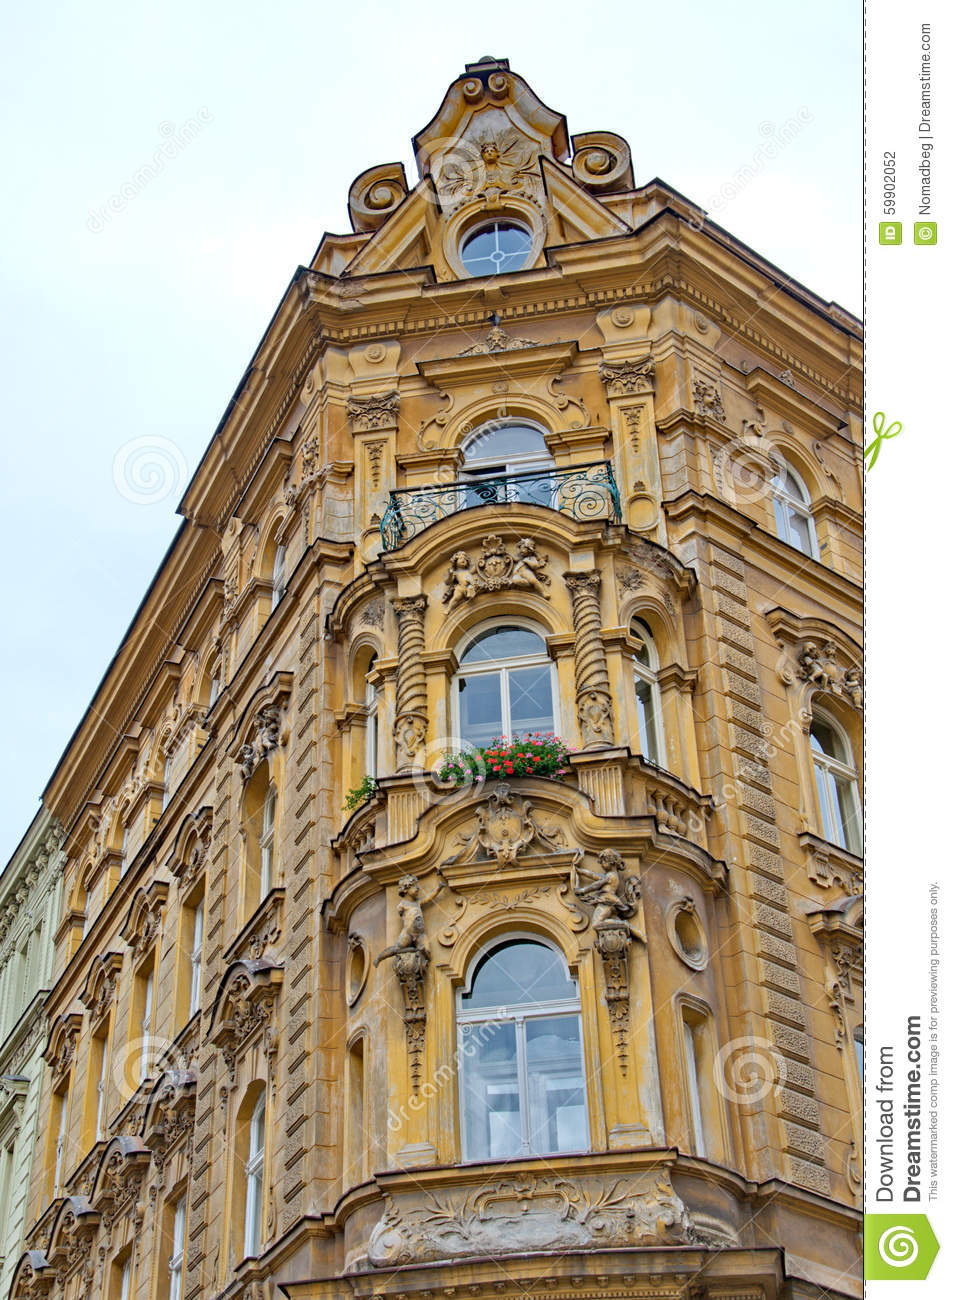 Beauty of baroque architecture in prague stock photo for Pictures of baroque architecture